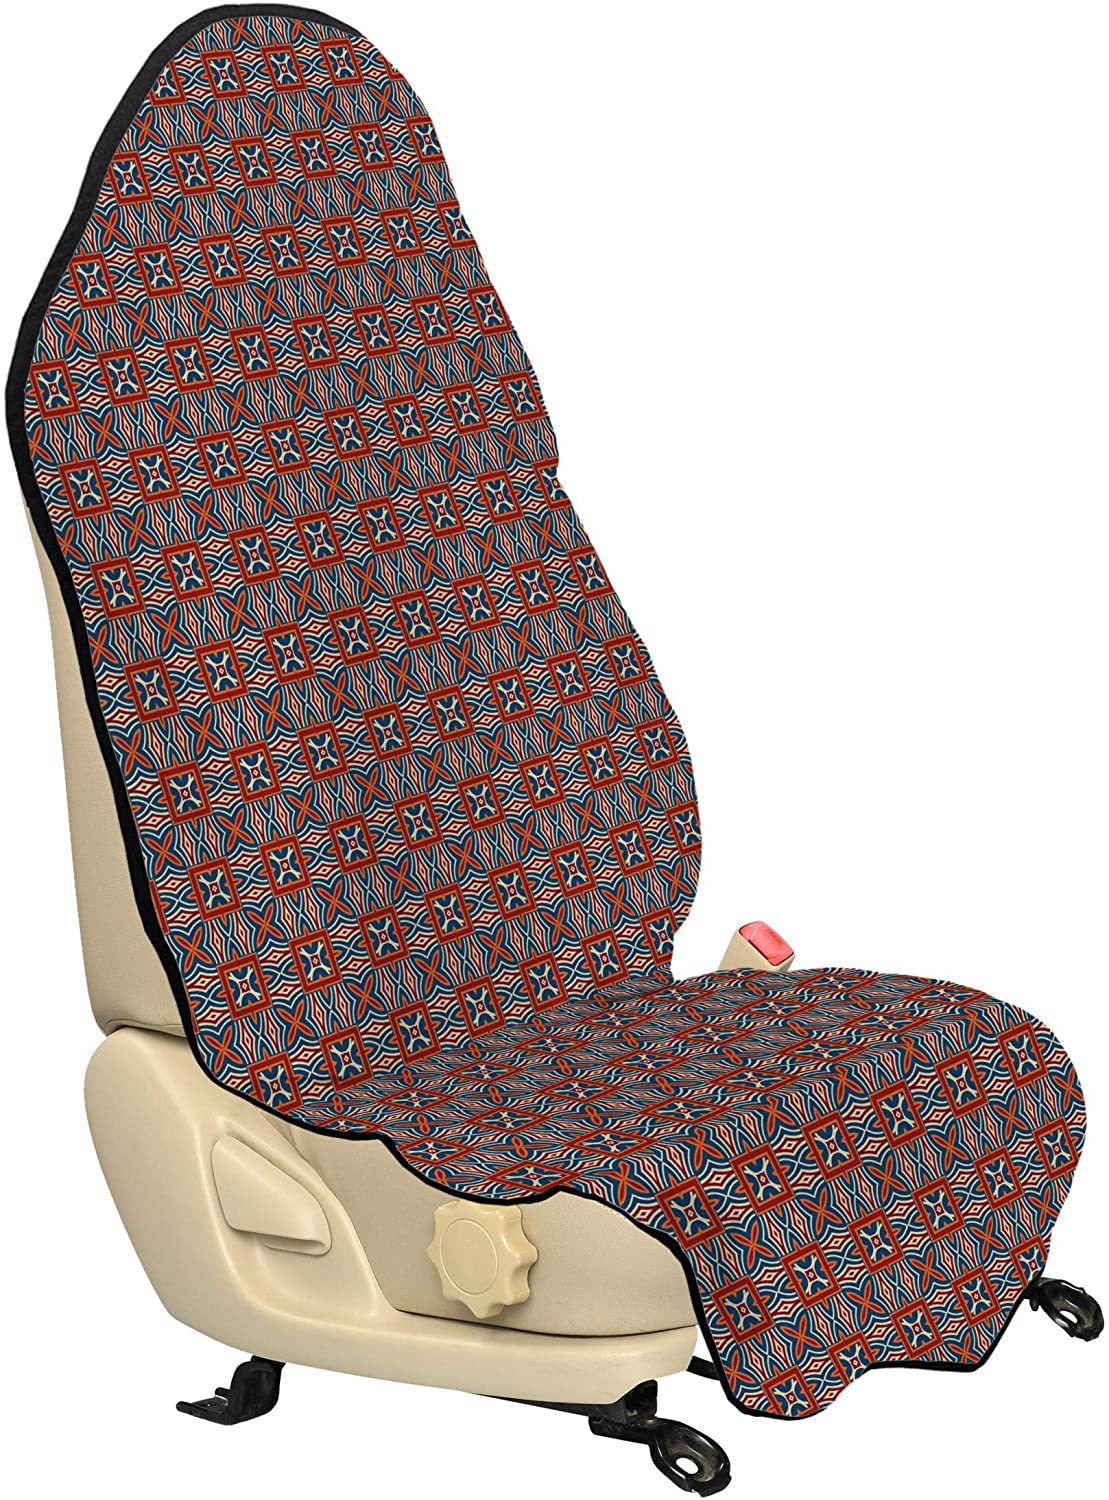 Lunarable Ethnic Car Seat Hoodie, Traditional Moroccan Mosaic Tiles Ottoman Persian Middle Eastern Motif, Car Seat Cover Protector Non Slip Backing Universal Fit, 30